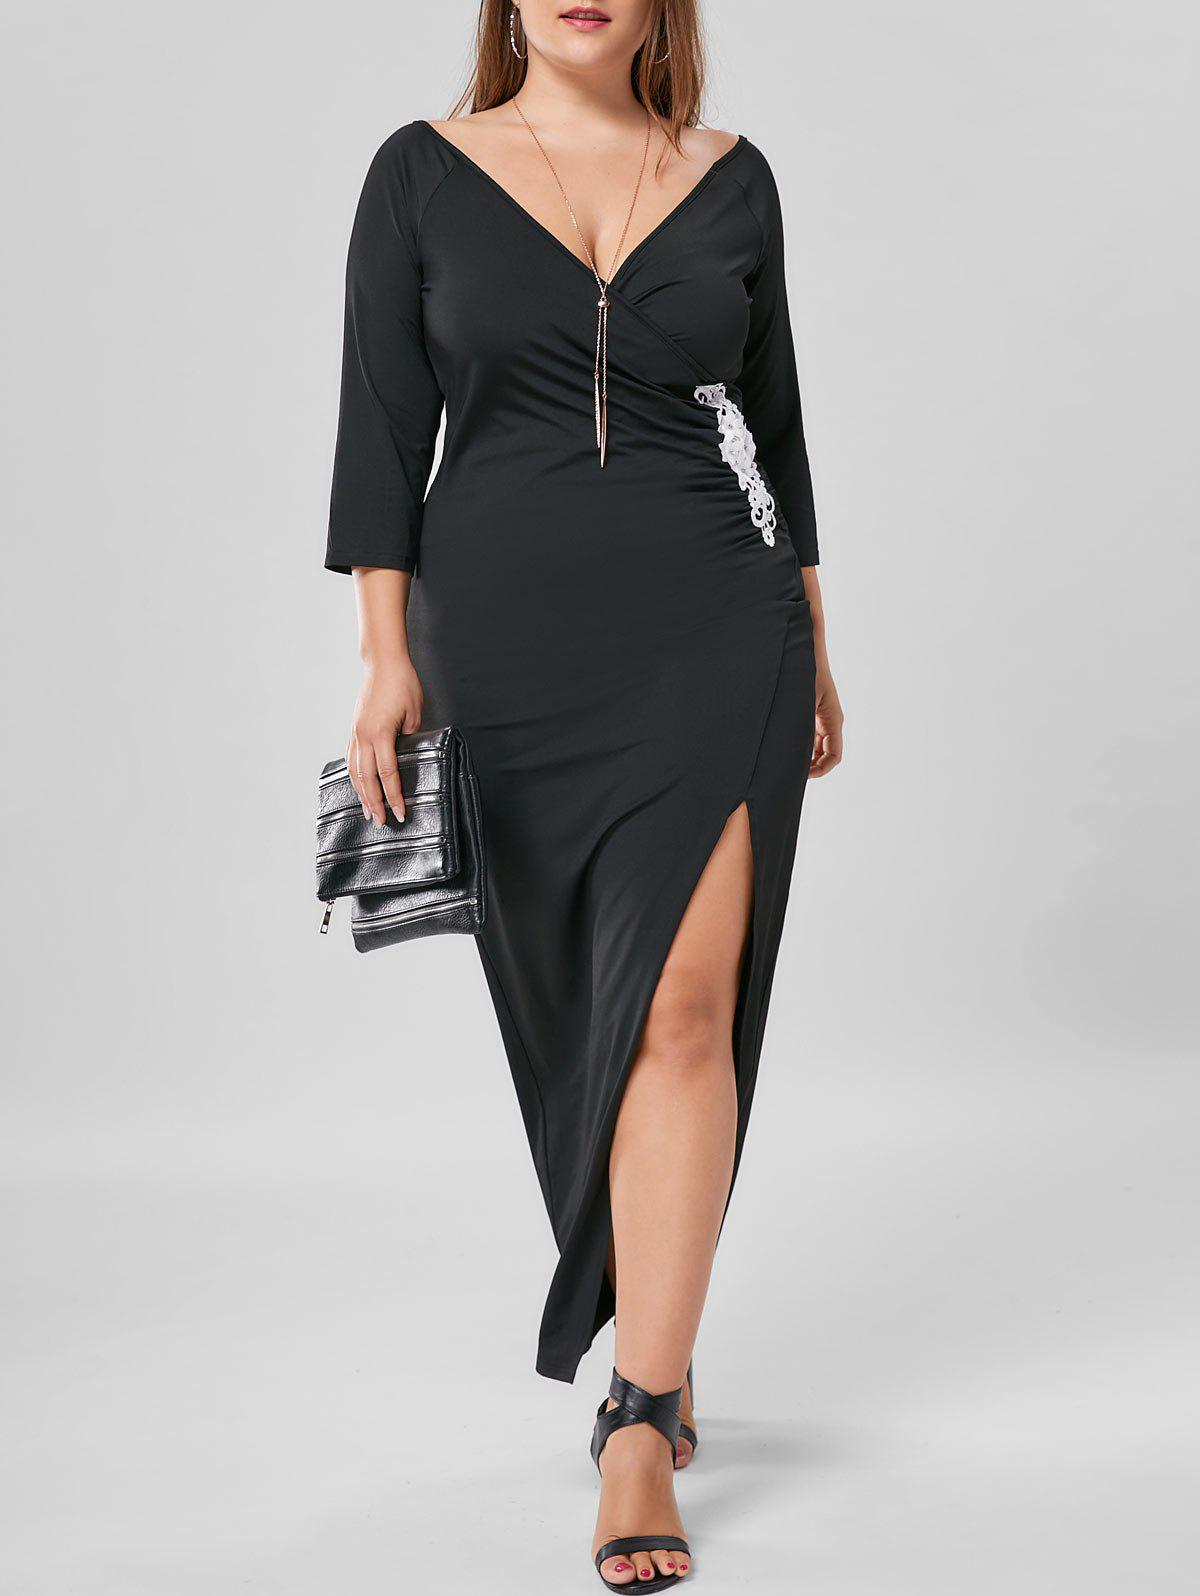 Fitted Pencil Plus Size Applique Side Slit Long Sheath Maxi DressWOMEN<br><br>Size: XL; Color: BLACK; Style: Brief; Material: Polyester,Spandex; Silhouette: Sheath; Dresses Length: Ankle-Length; Neckline: Plunging Neck; Sleeve Length: 3/4 Length Sleeves; Embellishment: Appliques; Pattern Type: Solid; With Belt: No; Season: Fall,Spring,Summer; Weight: 0.4000kg; Package Contents: 1 x Dress;